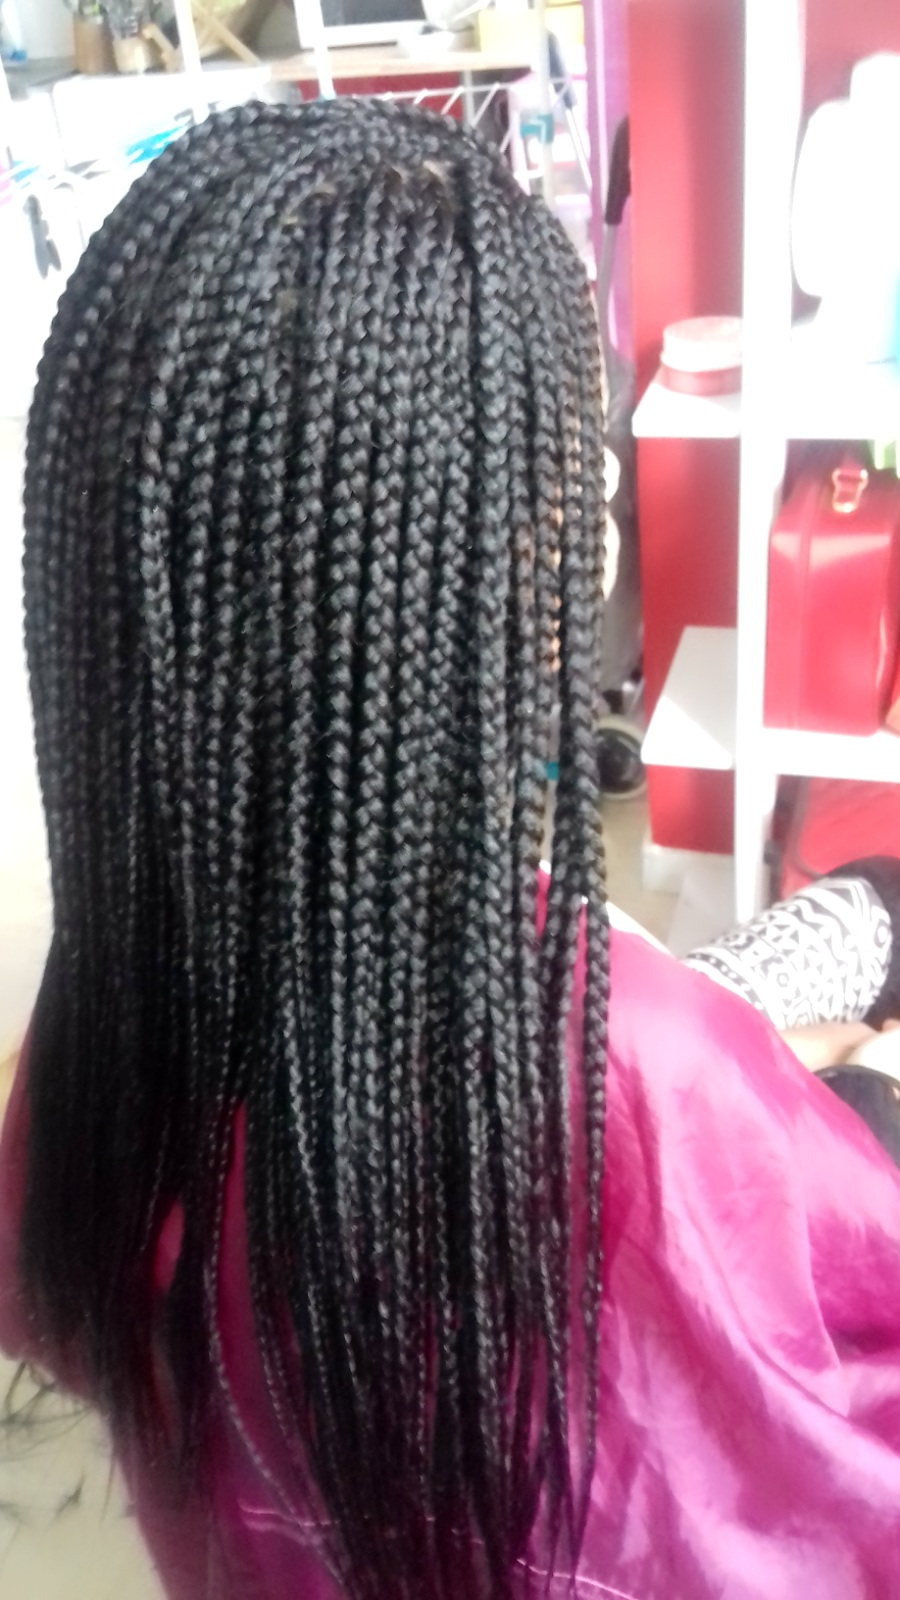 salon de coiffure afro tresse tresses box braids crochet braids vanilles tissages paris 75 77 78 91 92 93 94 95 DNGFKQWI